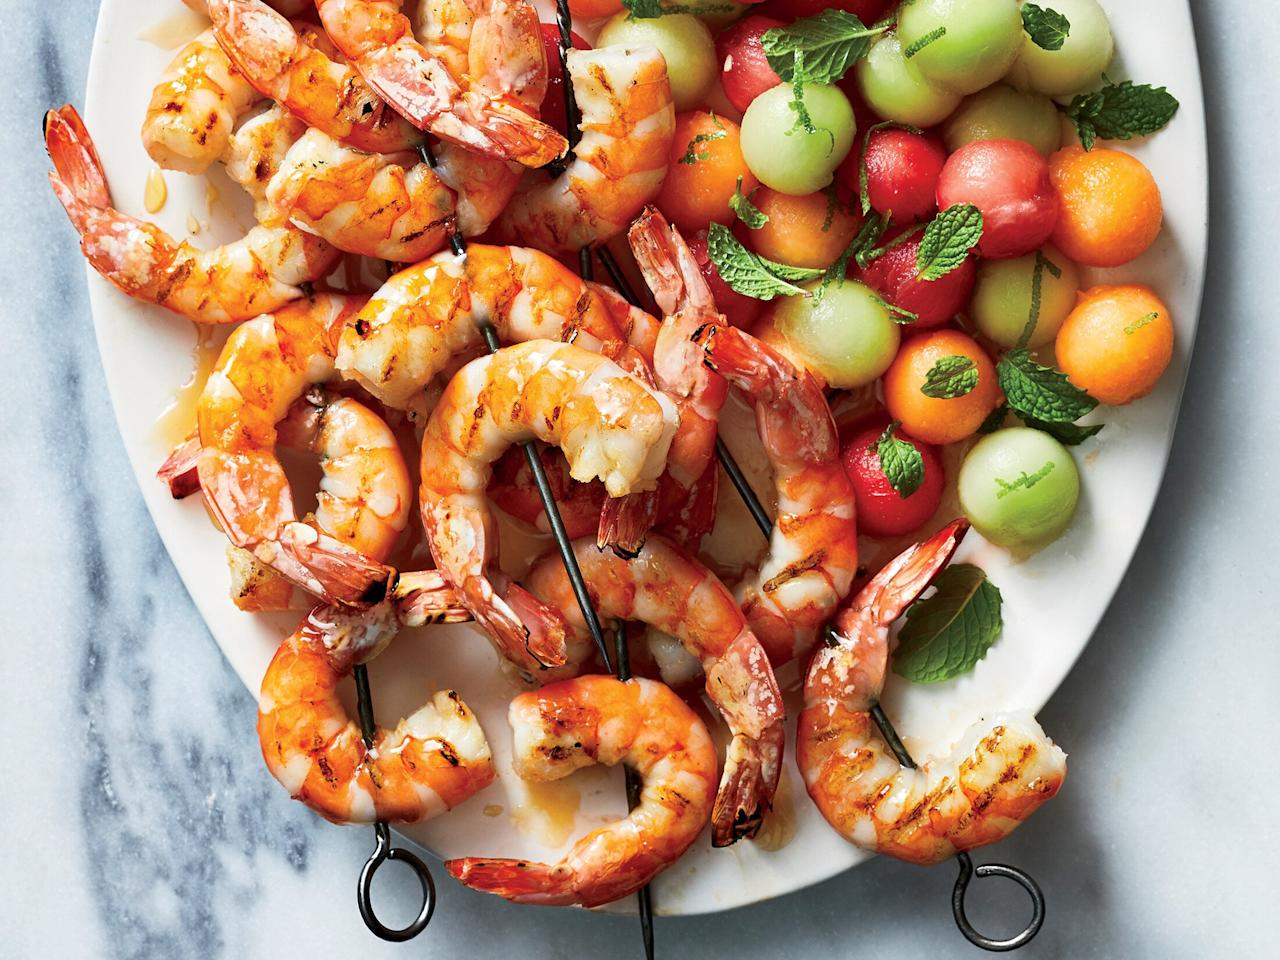 "<p>The shrimp is balanced with slight sweetness, bitter char, and tangy lime—a combination that complements the refreshing melon. Pick the ripest melons you can find; they should be firm but slightly soft and fragrant, especially near the stem end. Round out this dinner with your favorite grain or the <a href=""https://www.cookinglight.com/recipes/herb-scented-rice-salad"">Herb-Scented Rice Salad</a>.</p> <p> <a href=""https://www.cookinglight.com/recipes/shrimp-kebabs-with-mint-and-melon-salad"">View Recipe: Shrimp Kebabs With Mint and Melon Salad</a></p>"